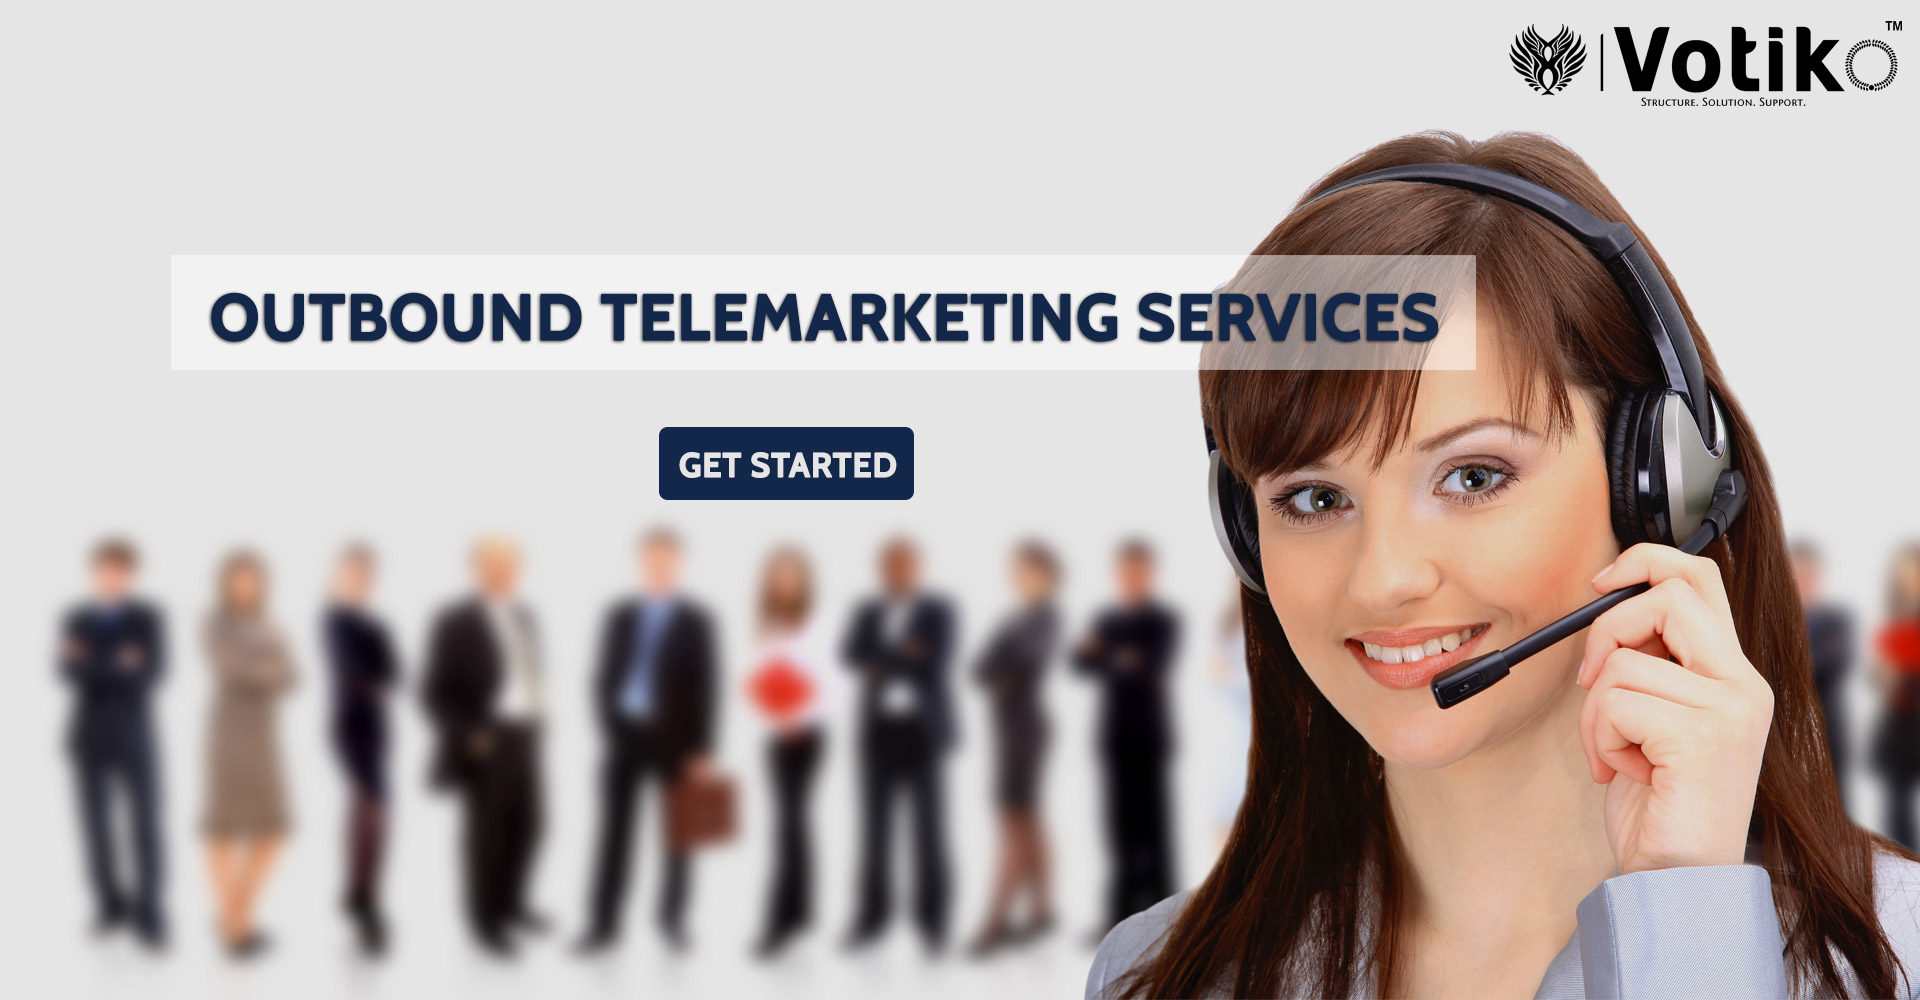 Why Are Outbound Telemarketing Services Necessary?